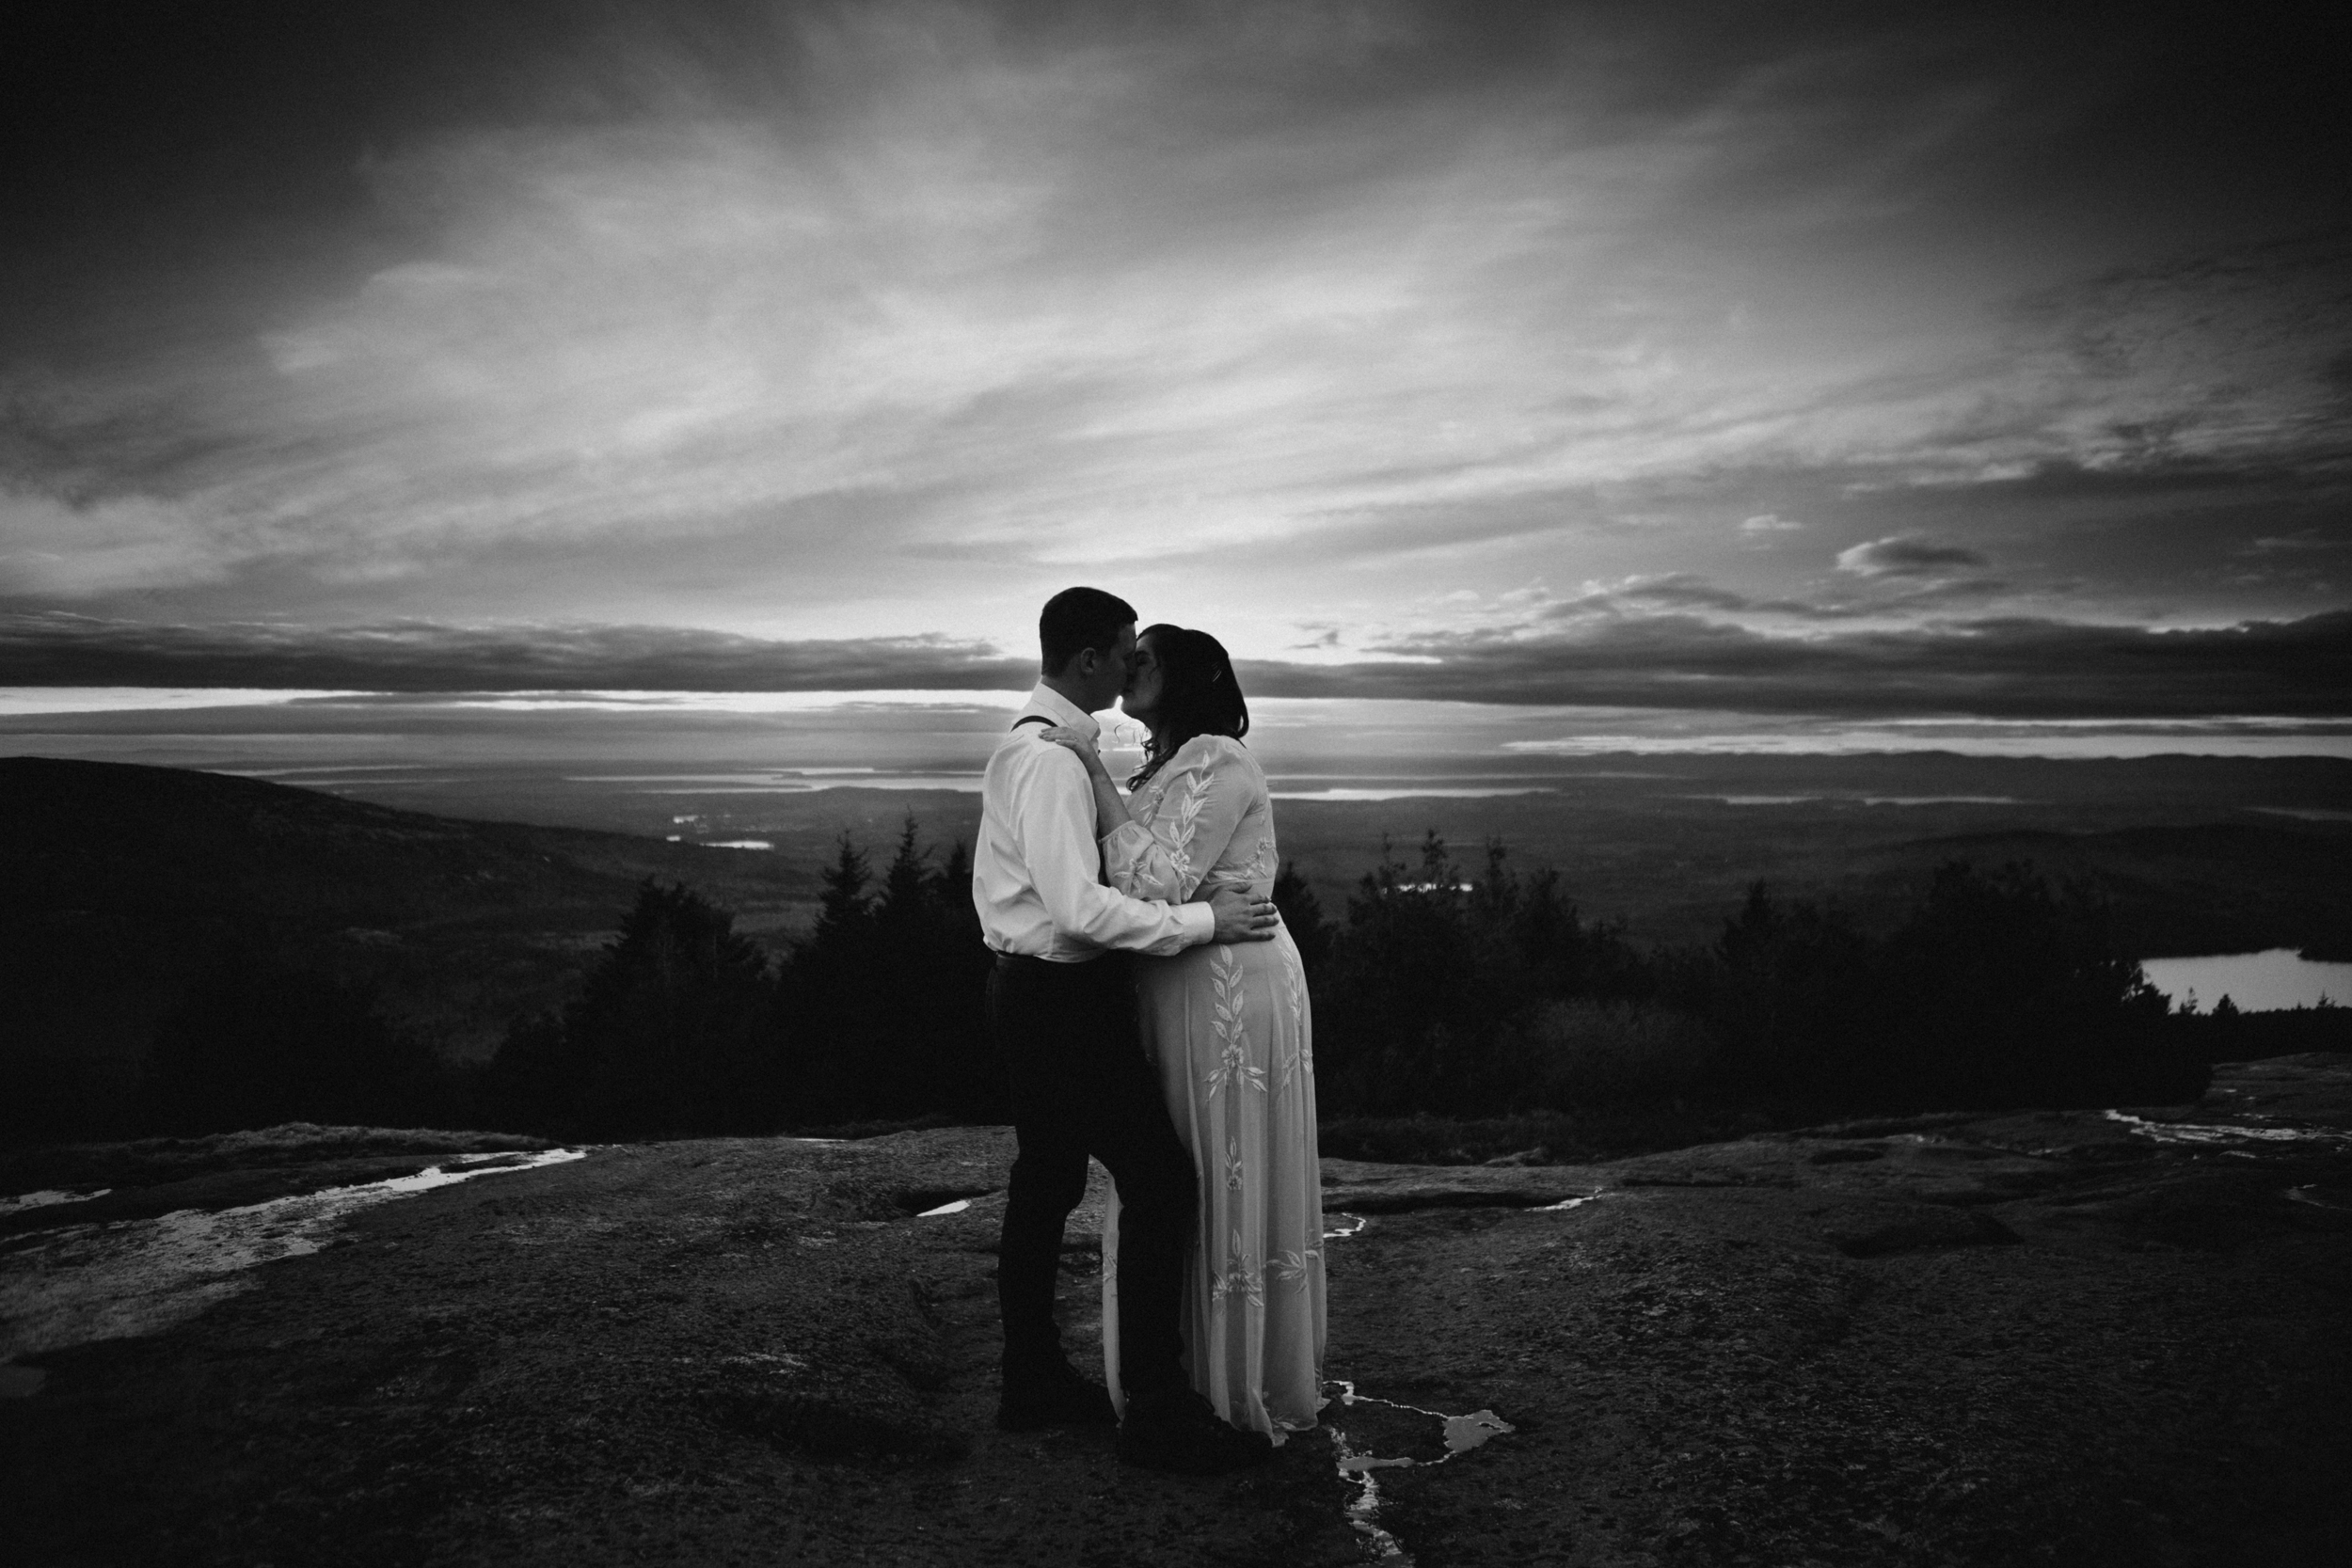 Acadia-Elopement-Photos-441.jpg